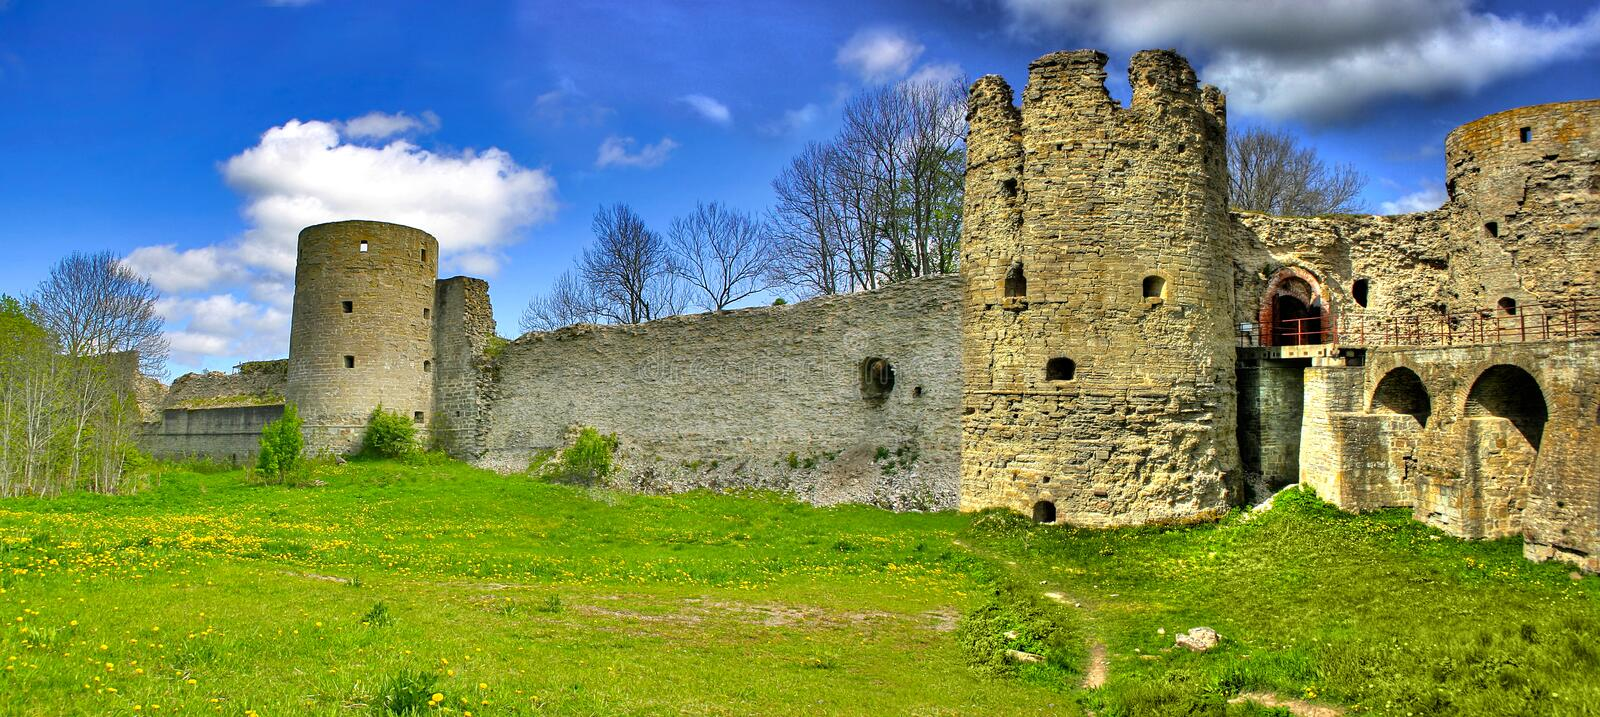 Bridge To Medieval Fortification Royalty Free Stock Photo